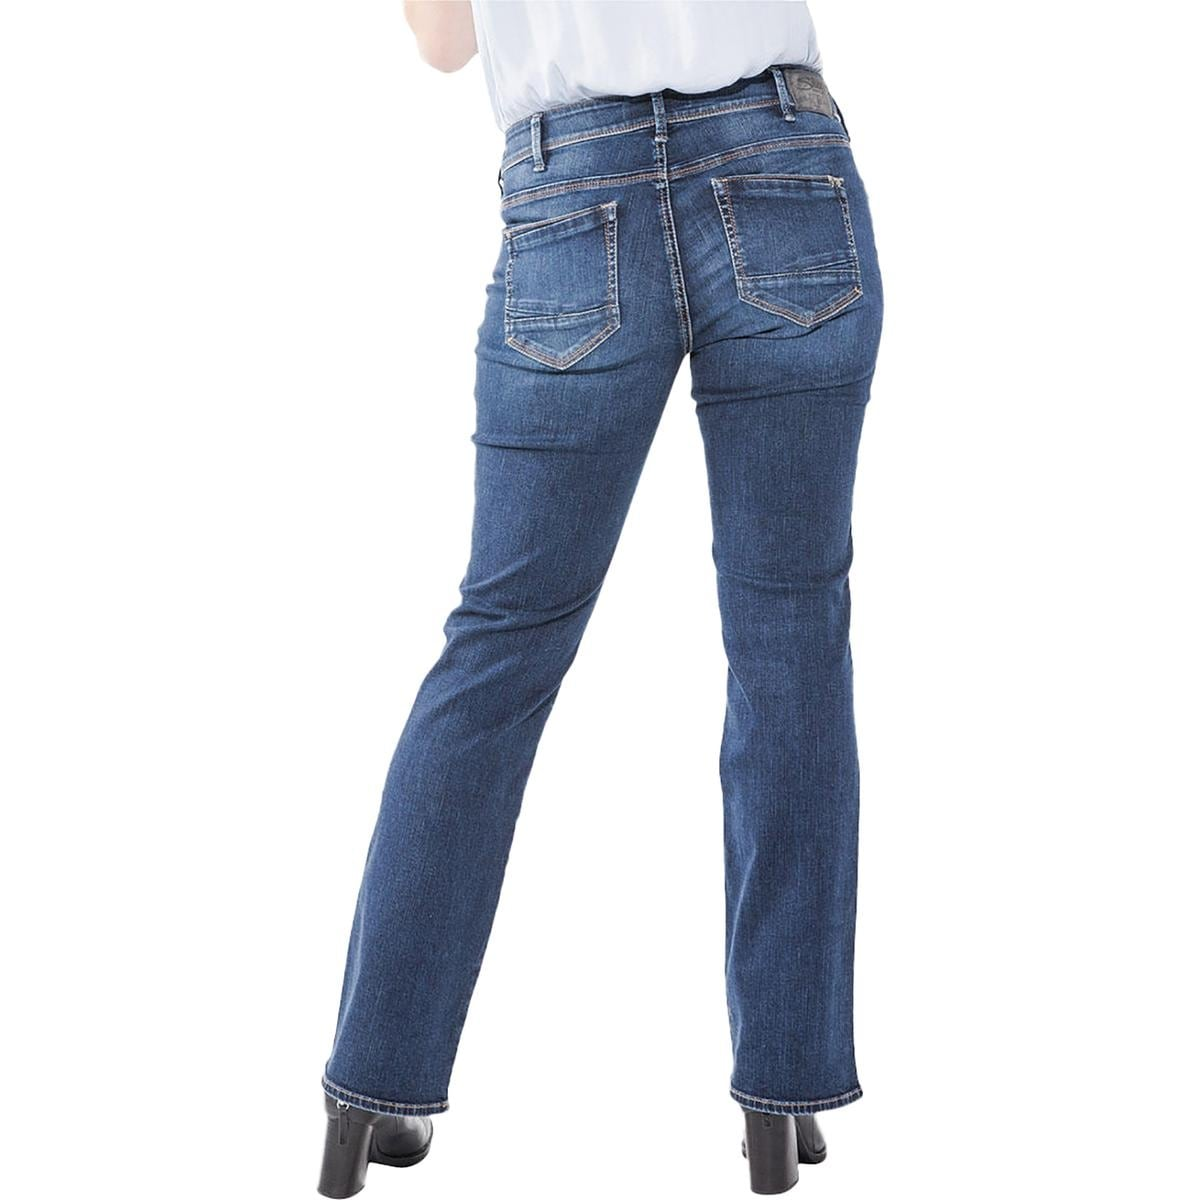 d34b52a1 Shop Silver Jeans Co. Womens Plus Suki Slim Bootcut Jeans Curvy Fit Indigo  Wash - Free Shipping On Orders Over $45 - Overstock - 22989245